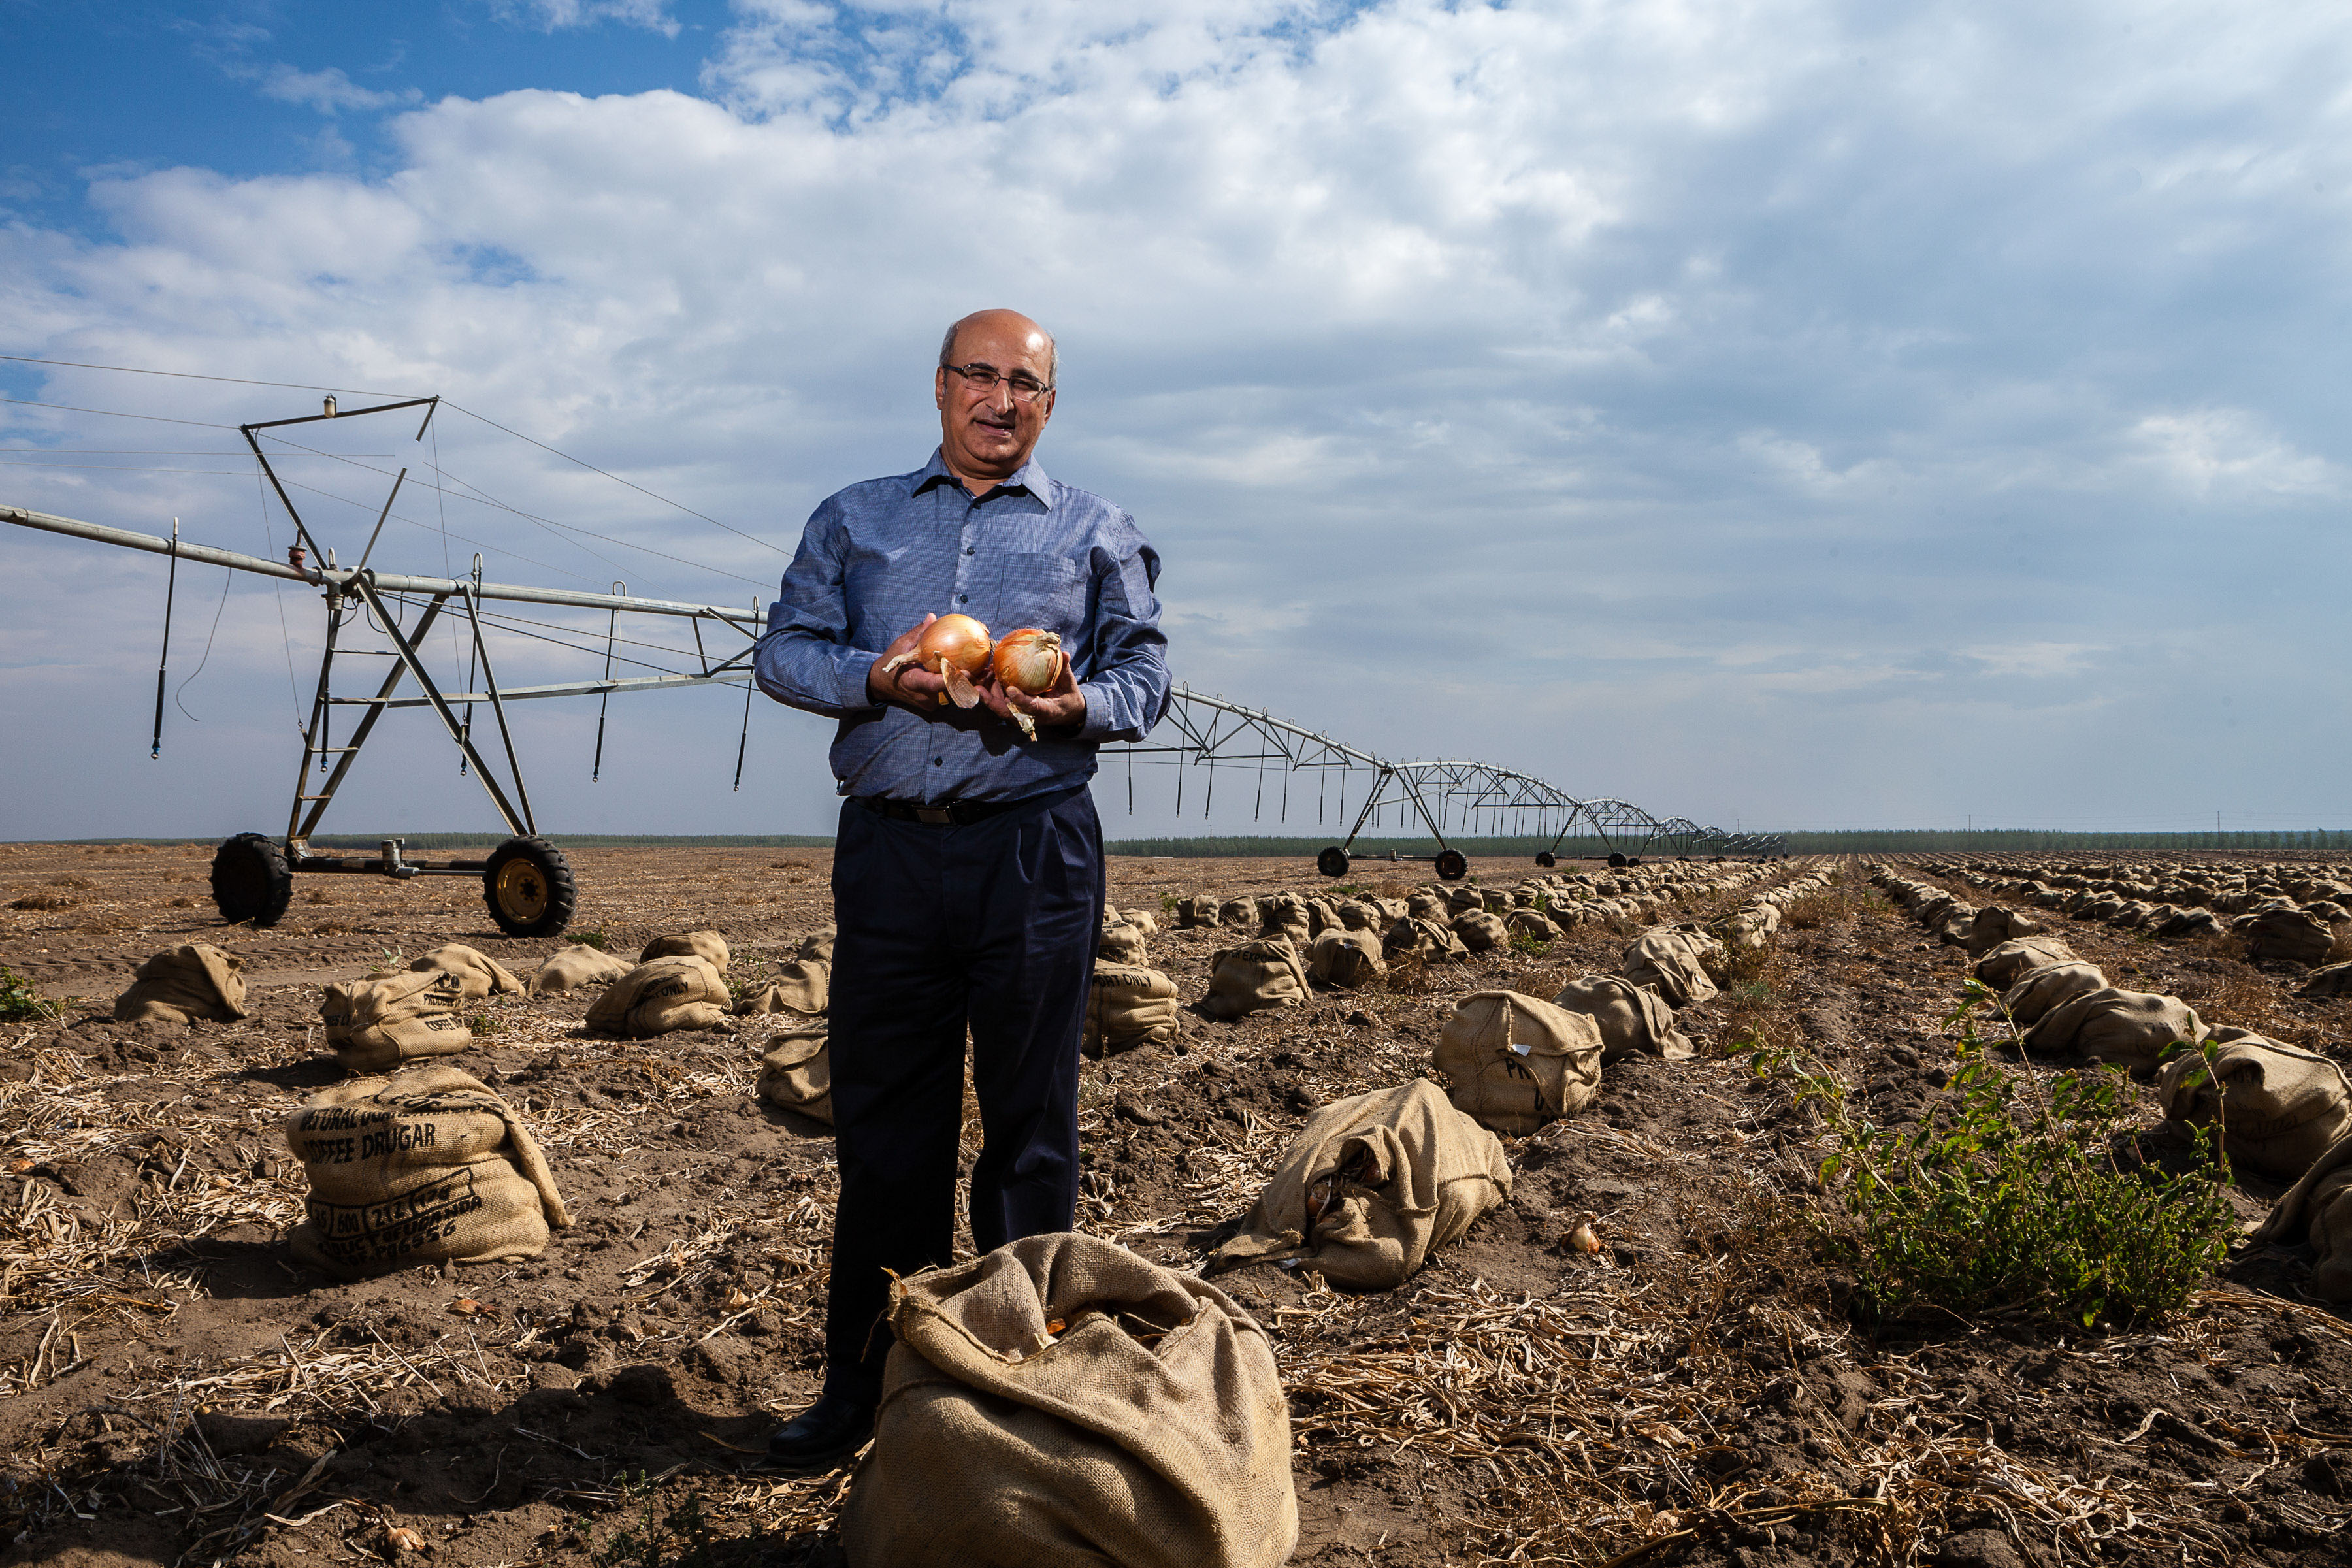 Businessman Posing with Onions in field with irrigation equipment